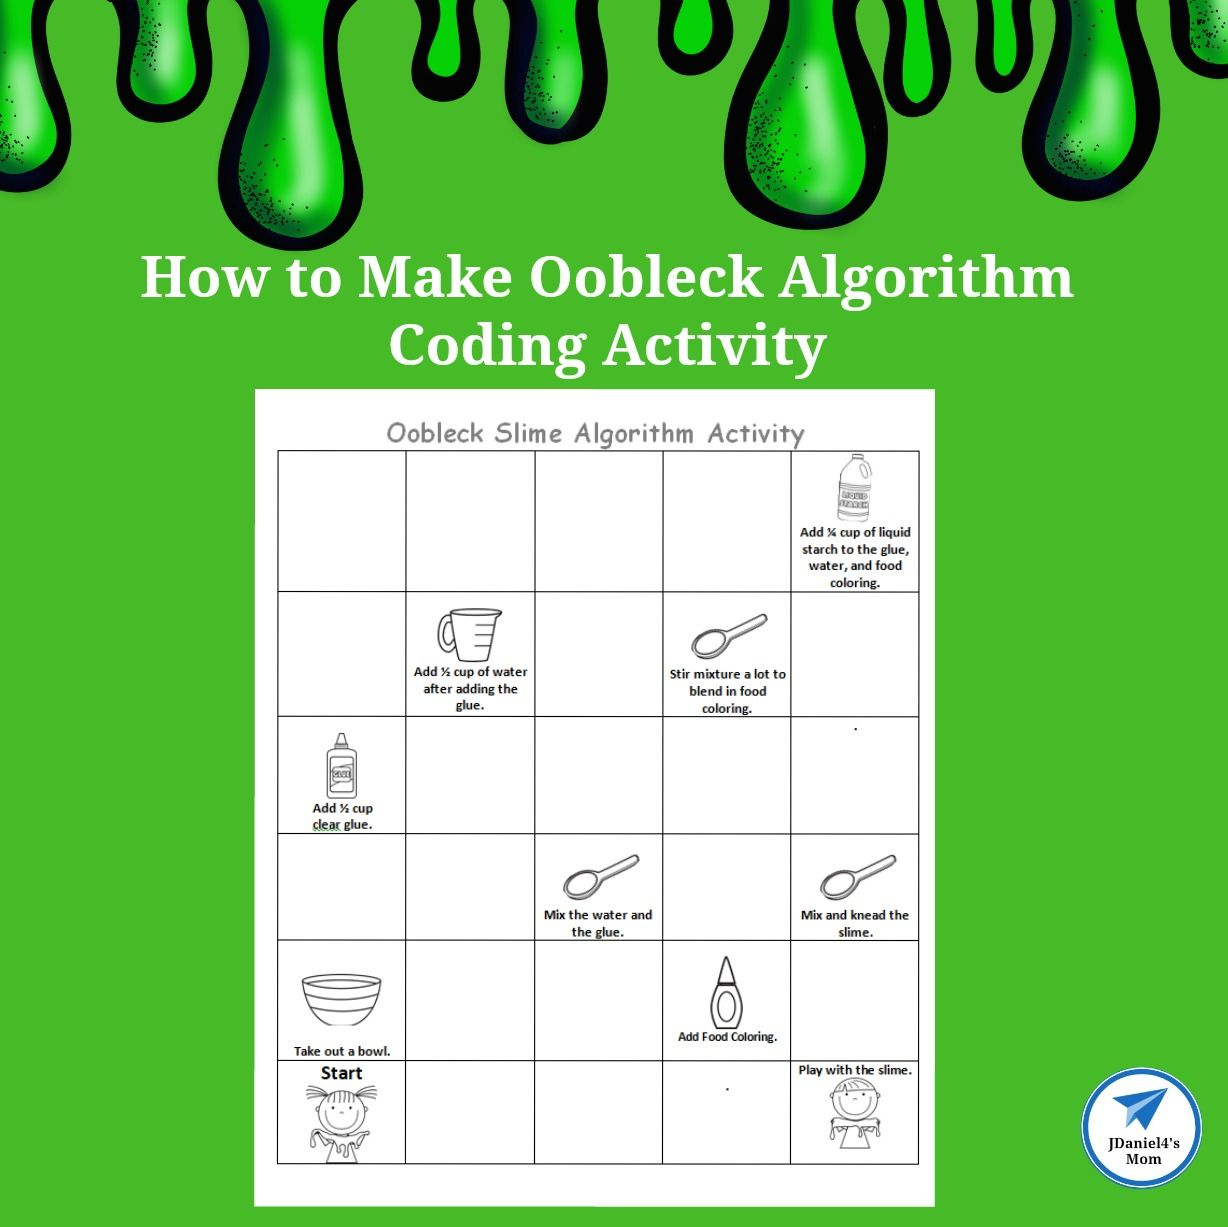 How To Make Oobleck Algorithm Coding Activity And